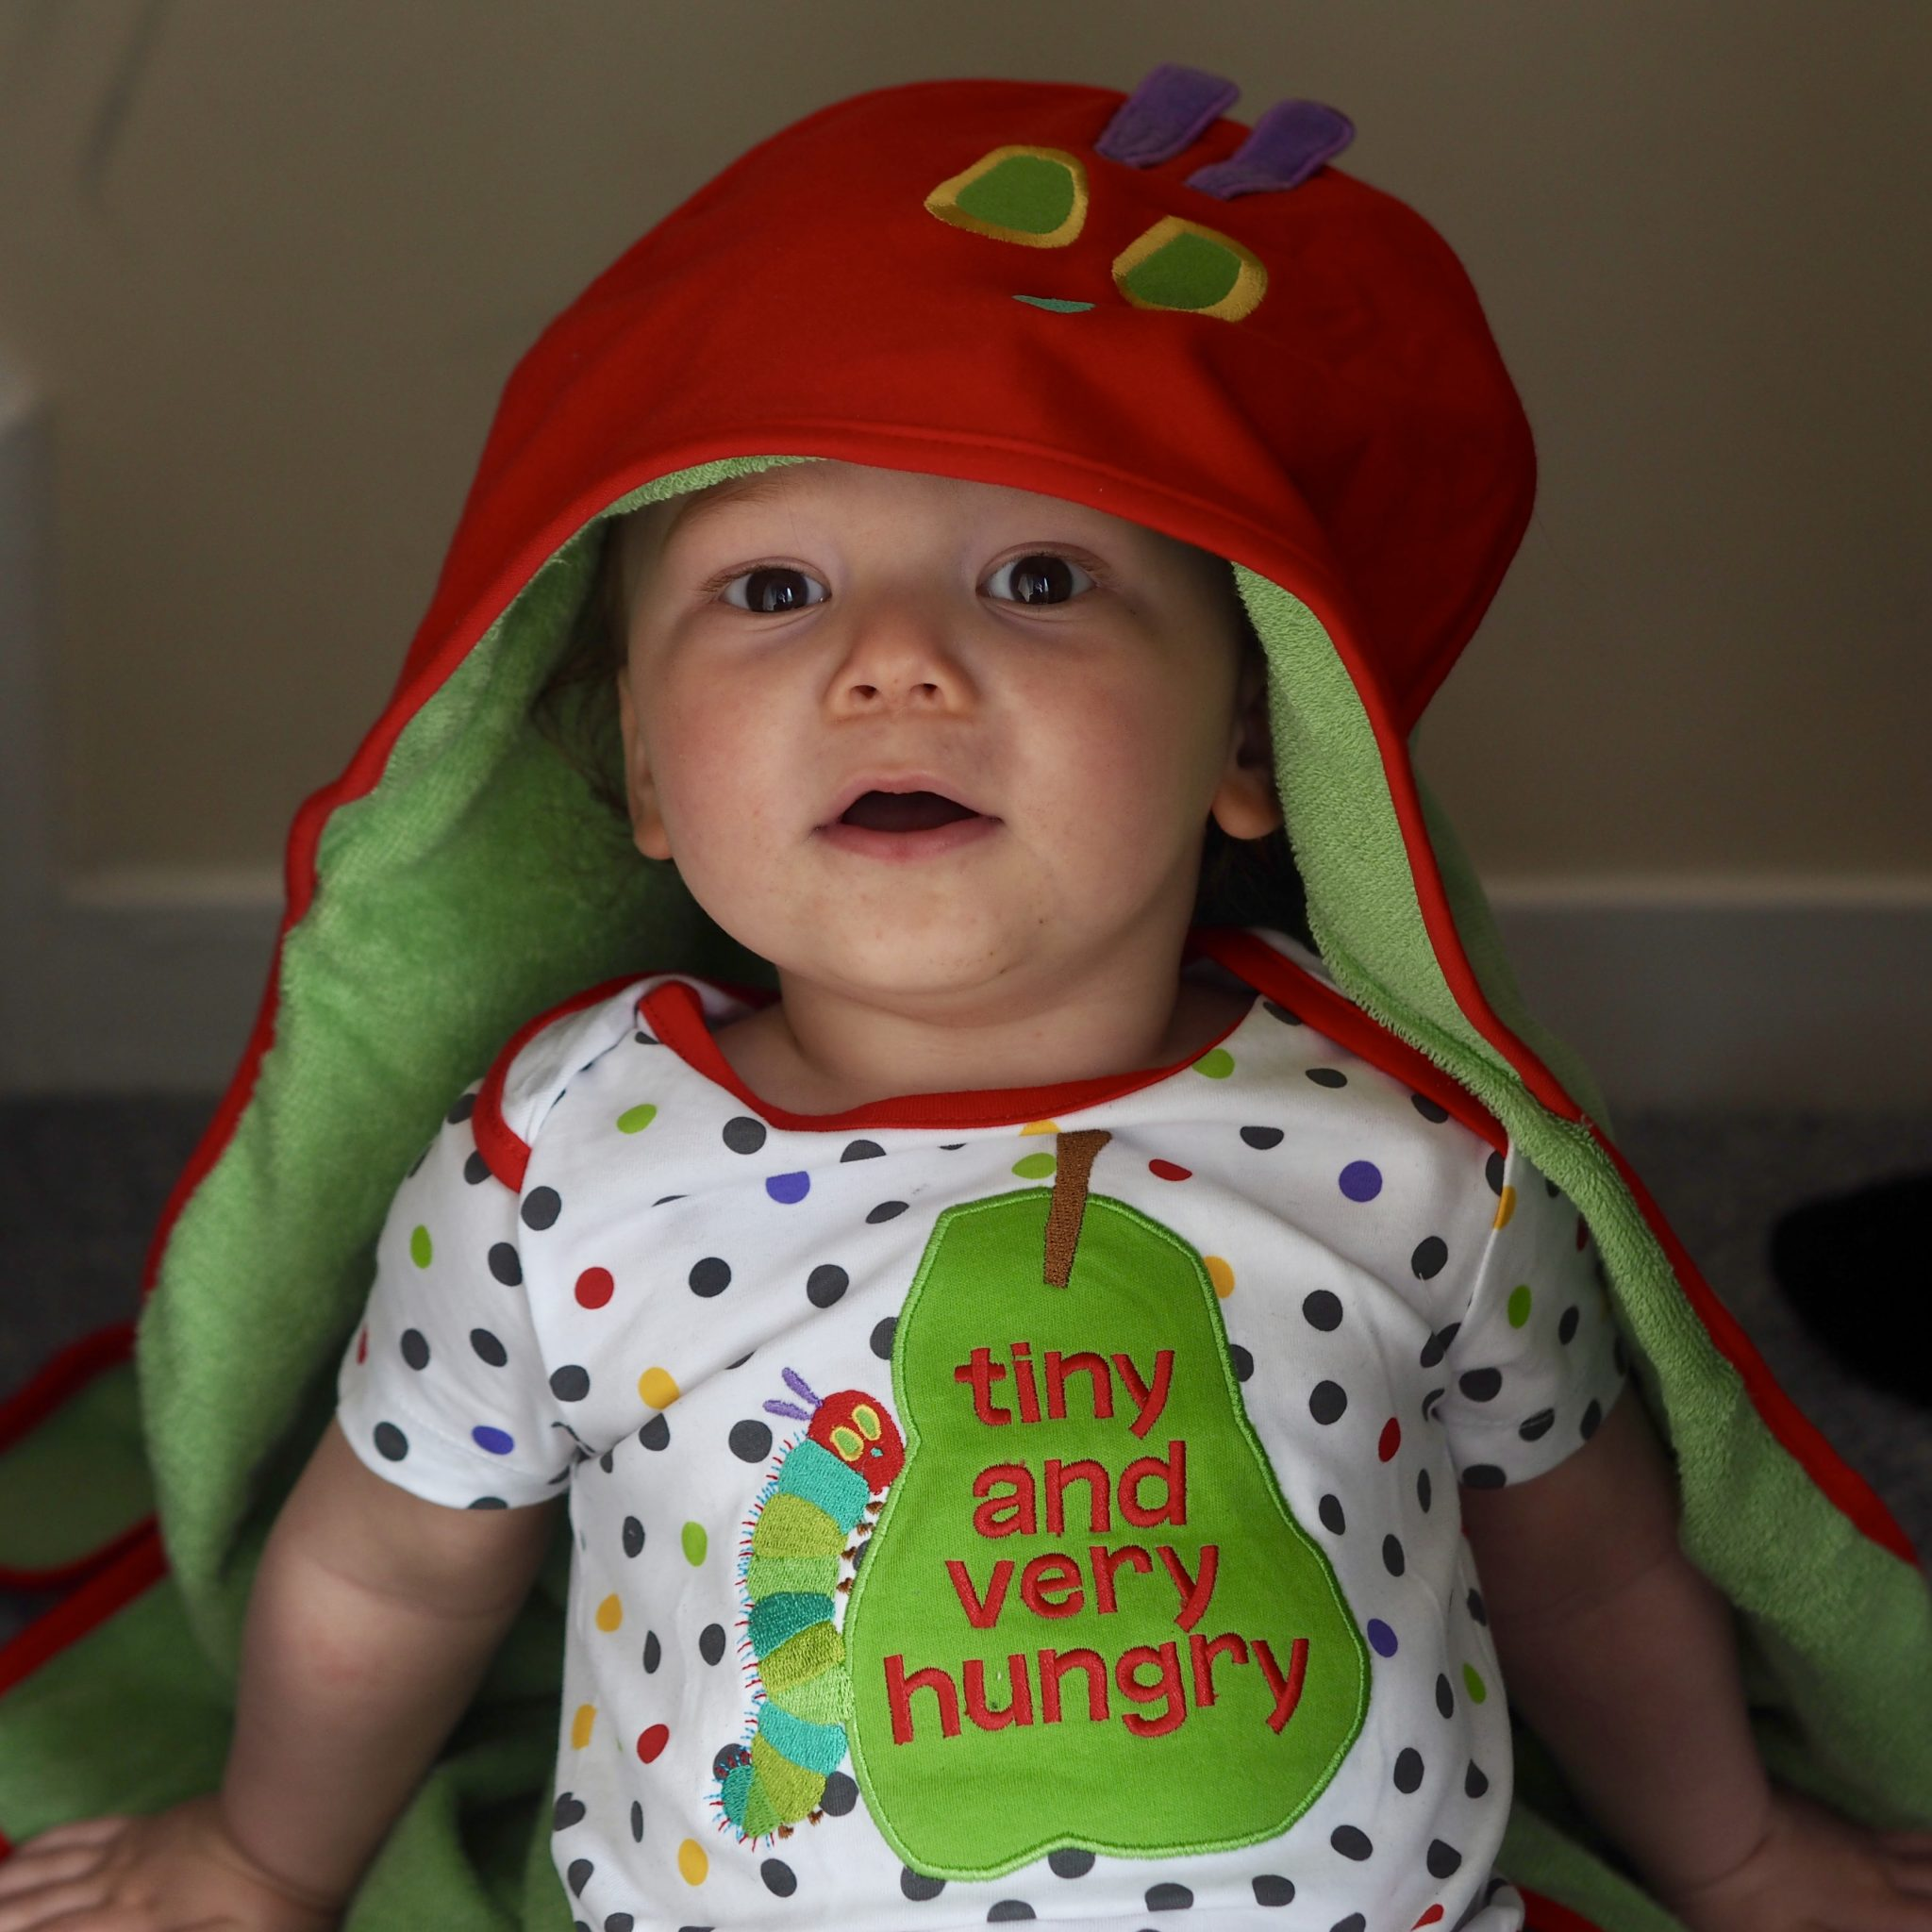 Green 'The Very Hungry Caterpillar' Towel review - pretty big butterflies